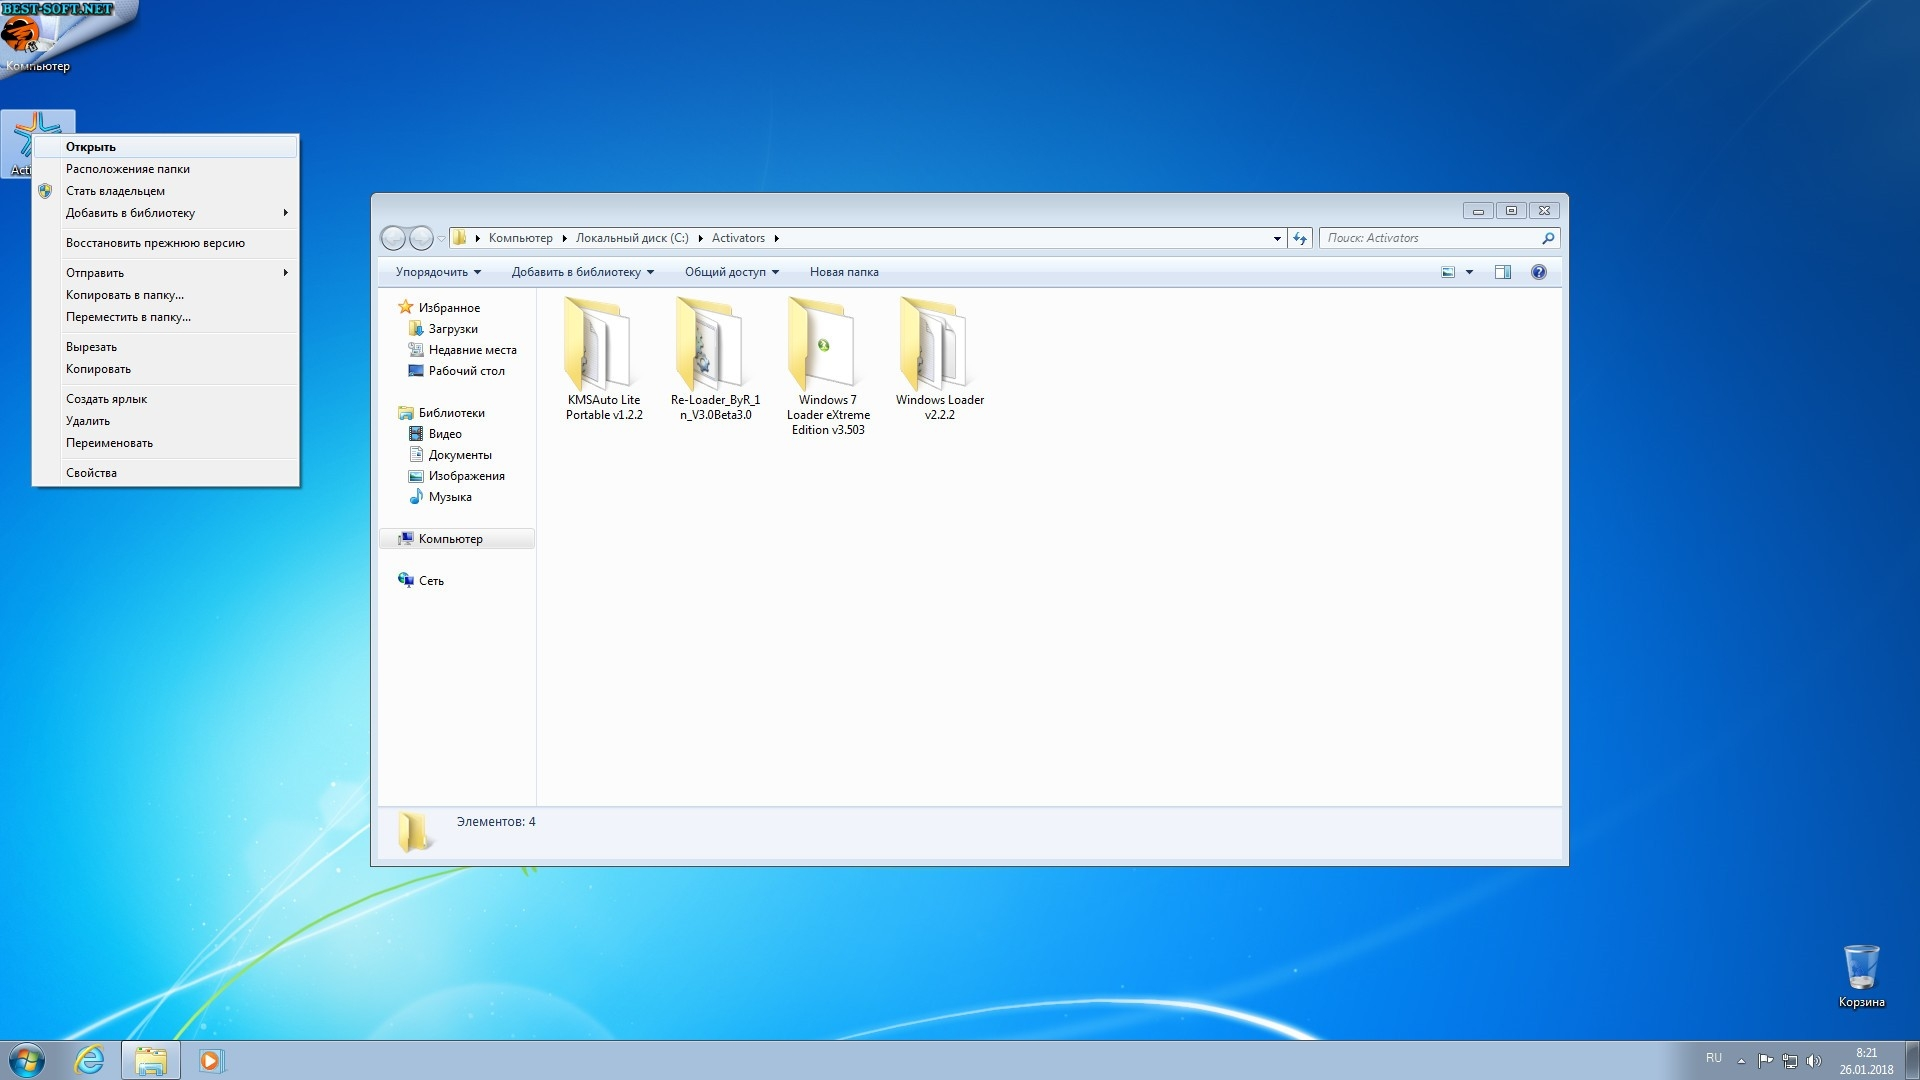 Versions of Creative Suite products tested with Windows 7